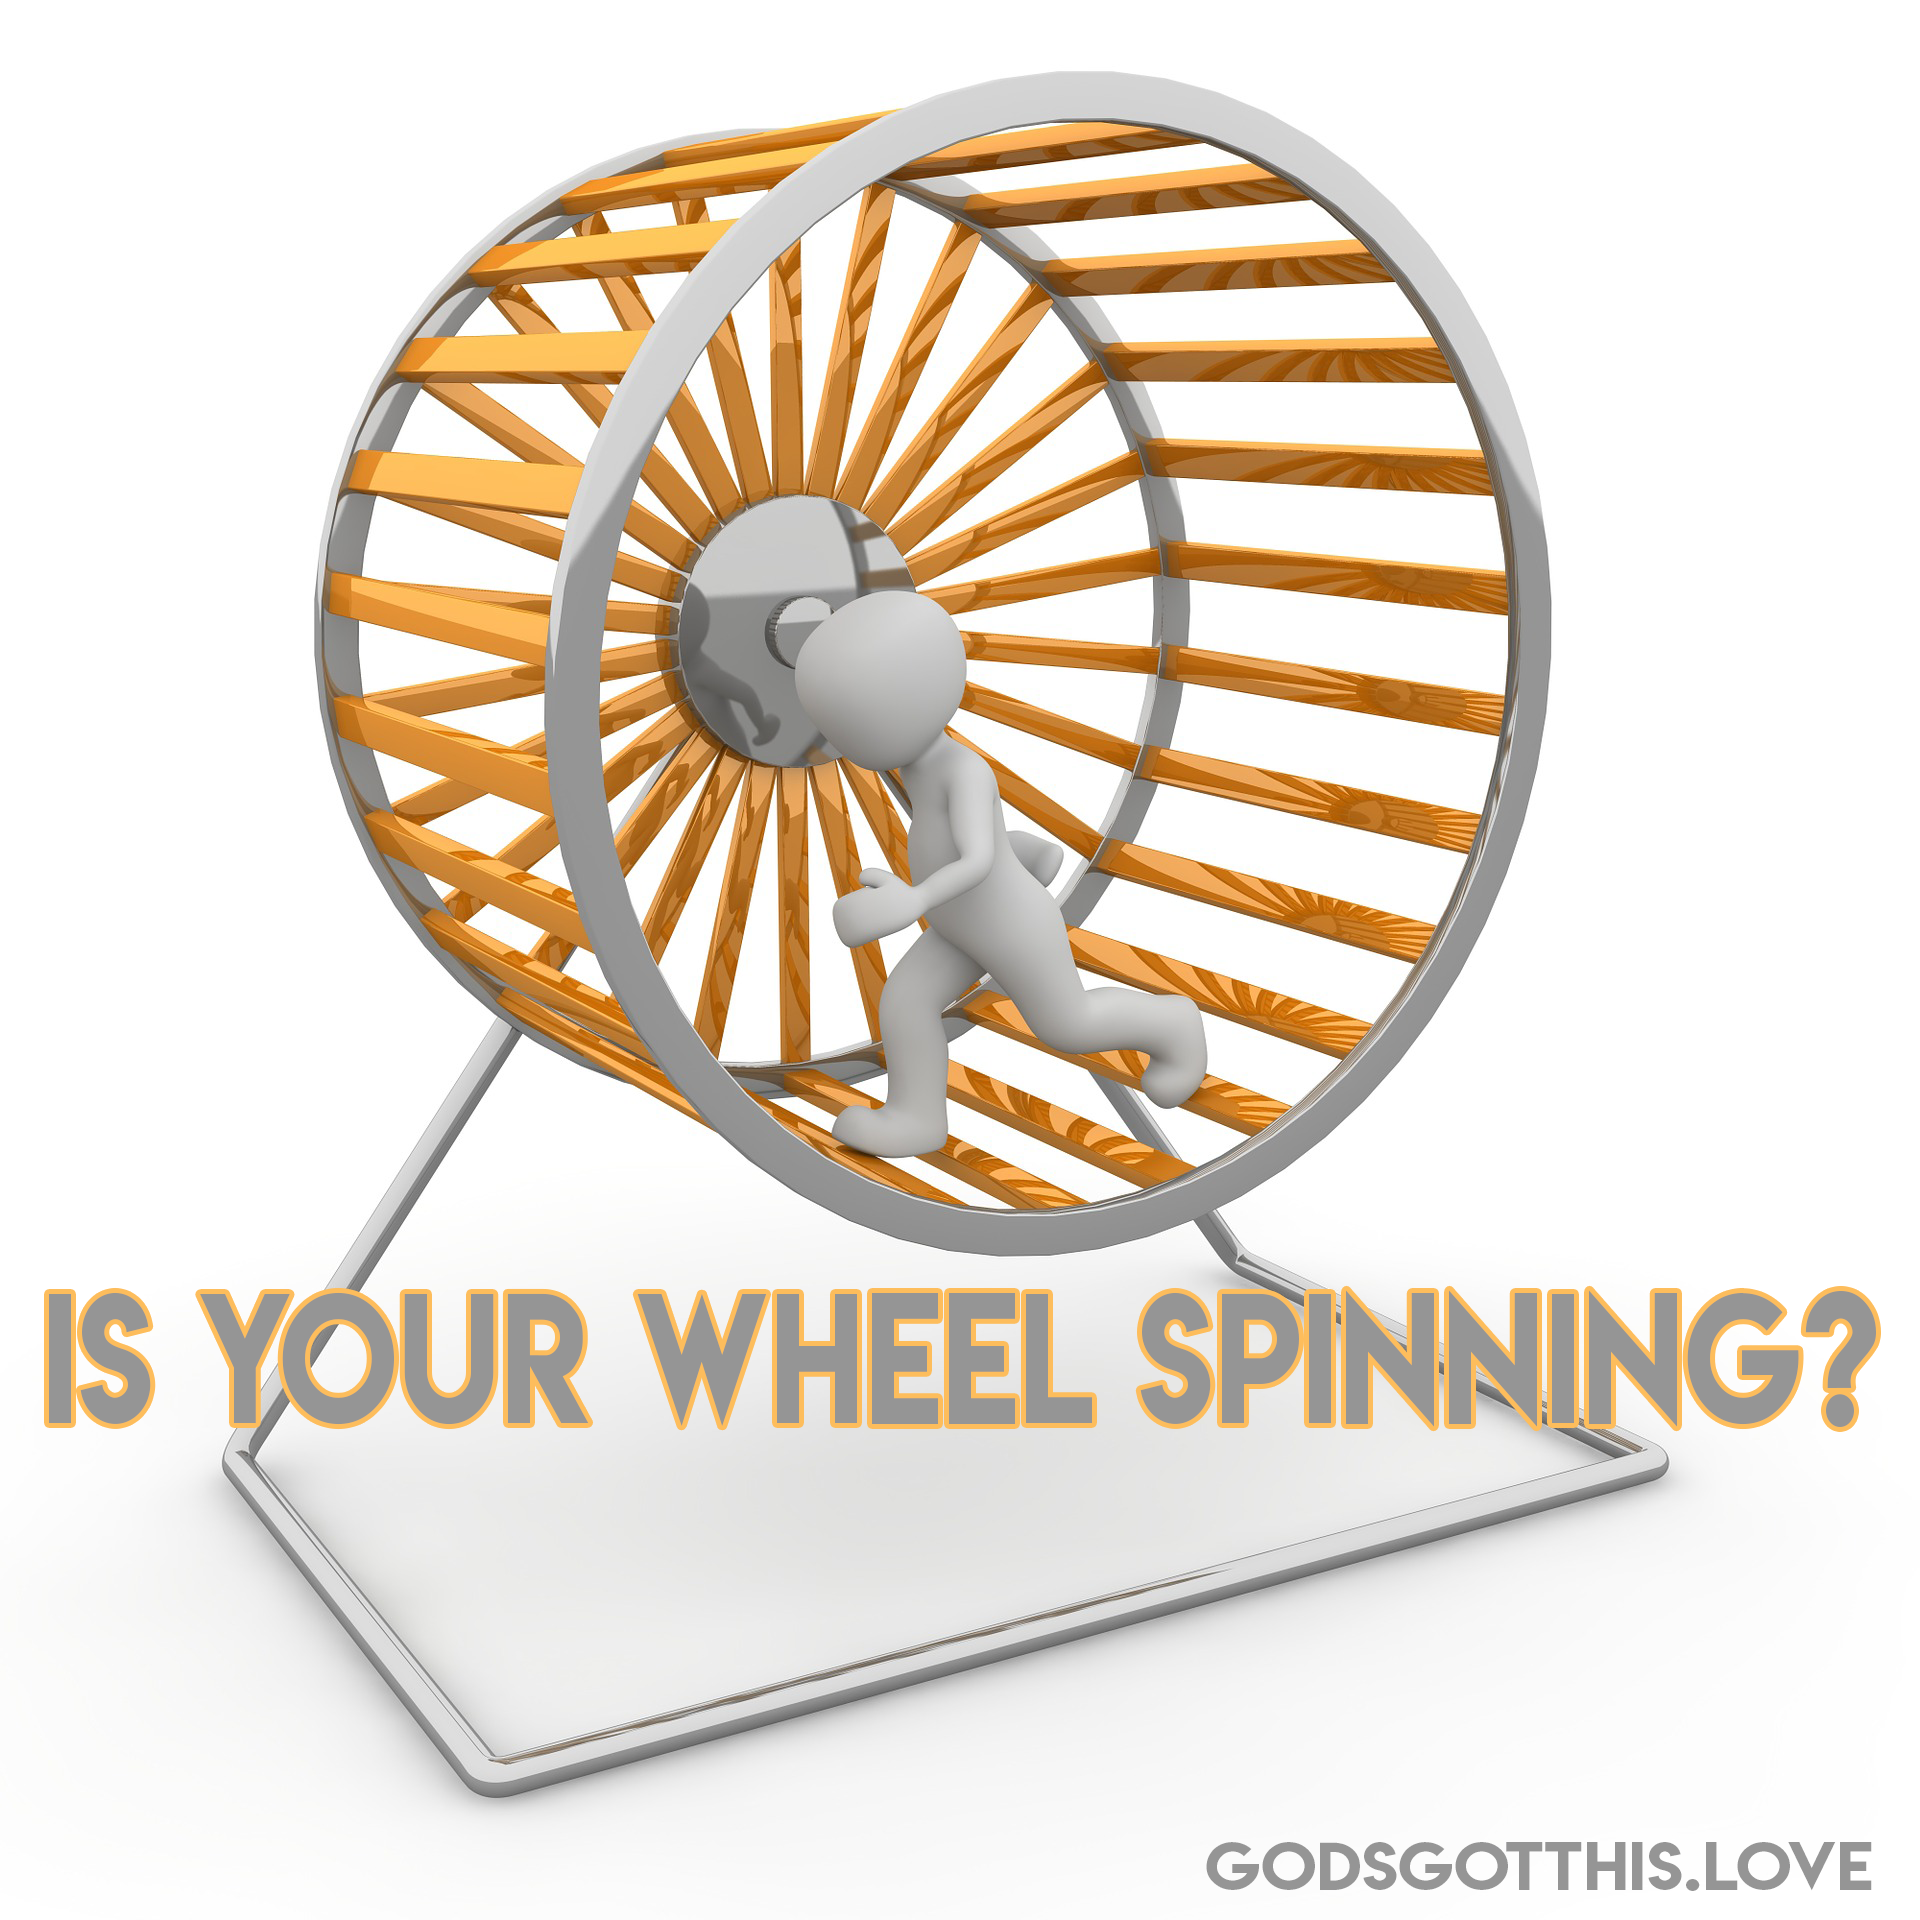 3 Ways To Get Moving When Your Wheel Is Spinning